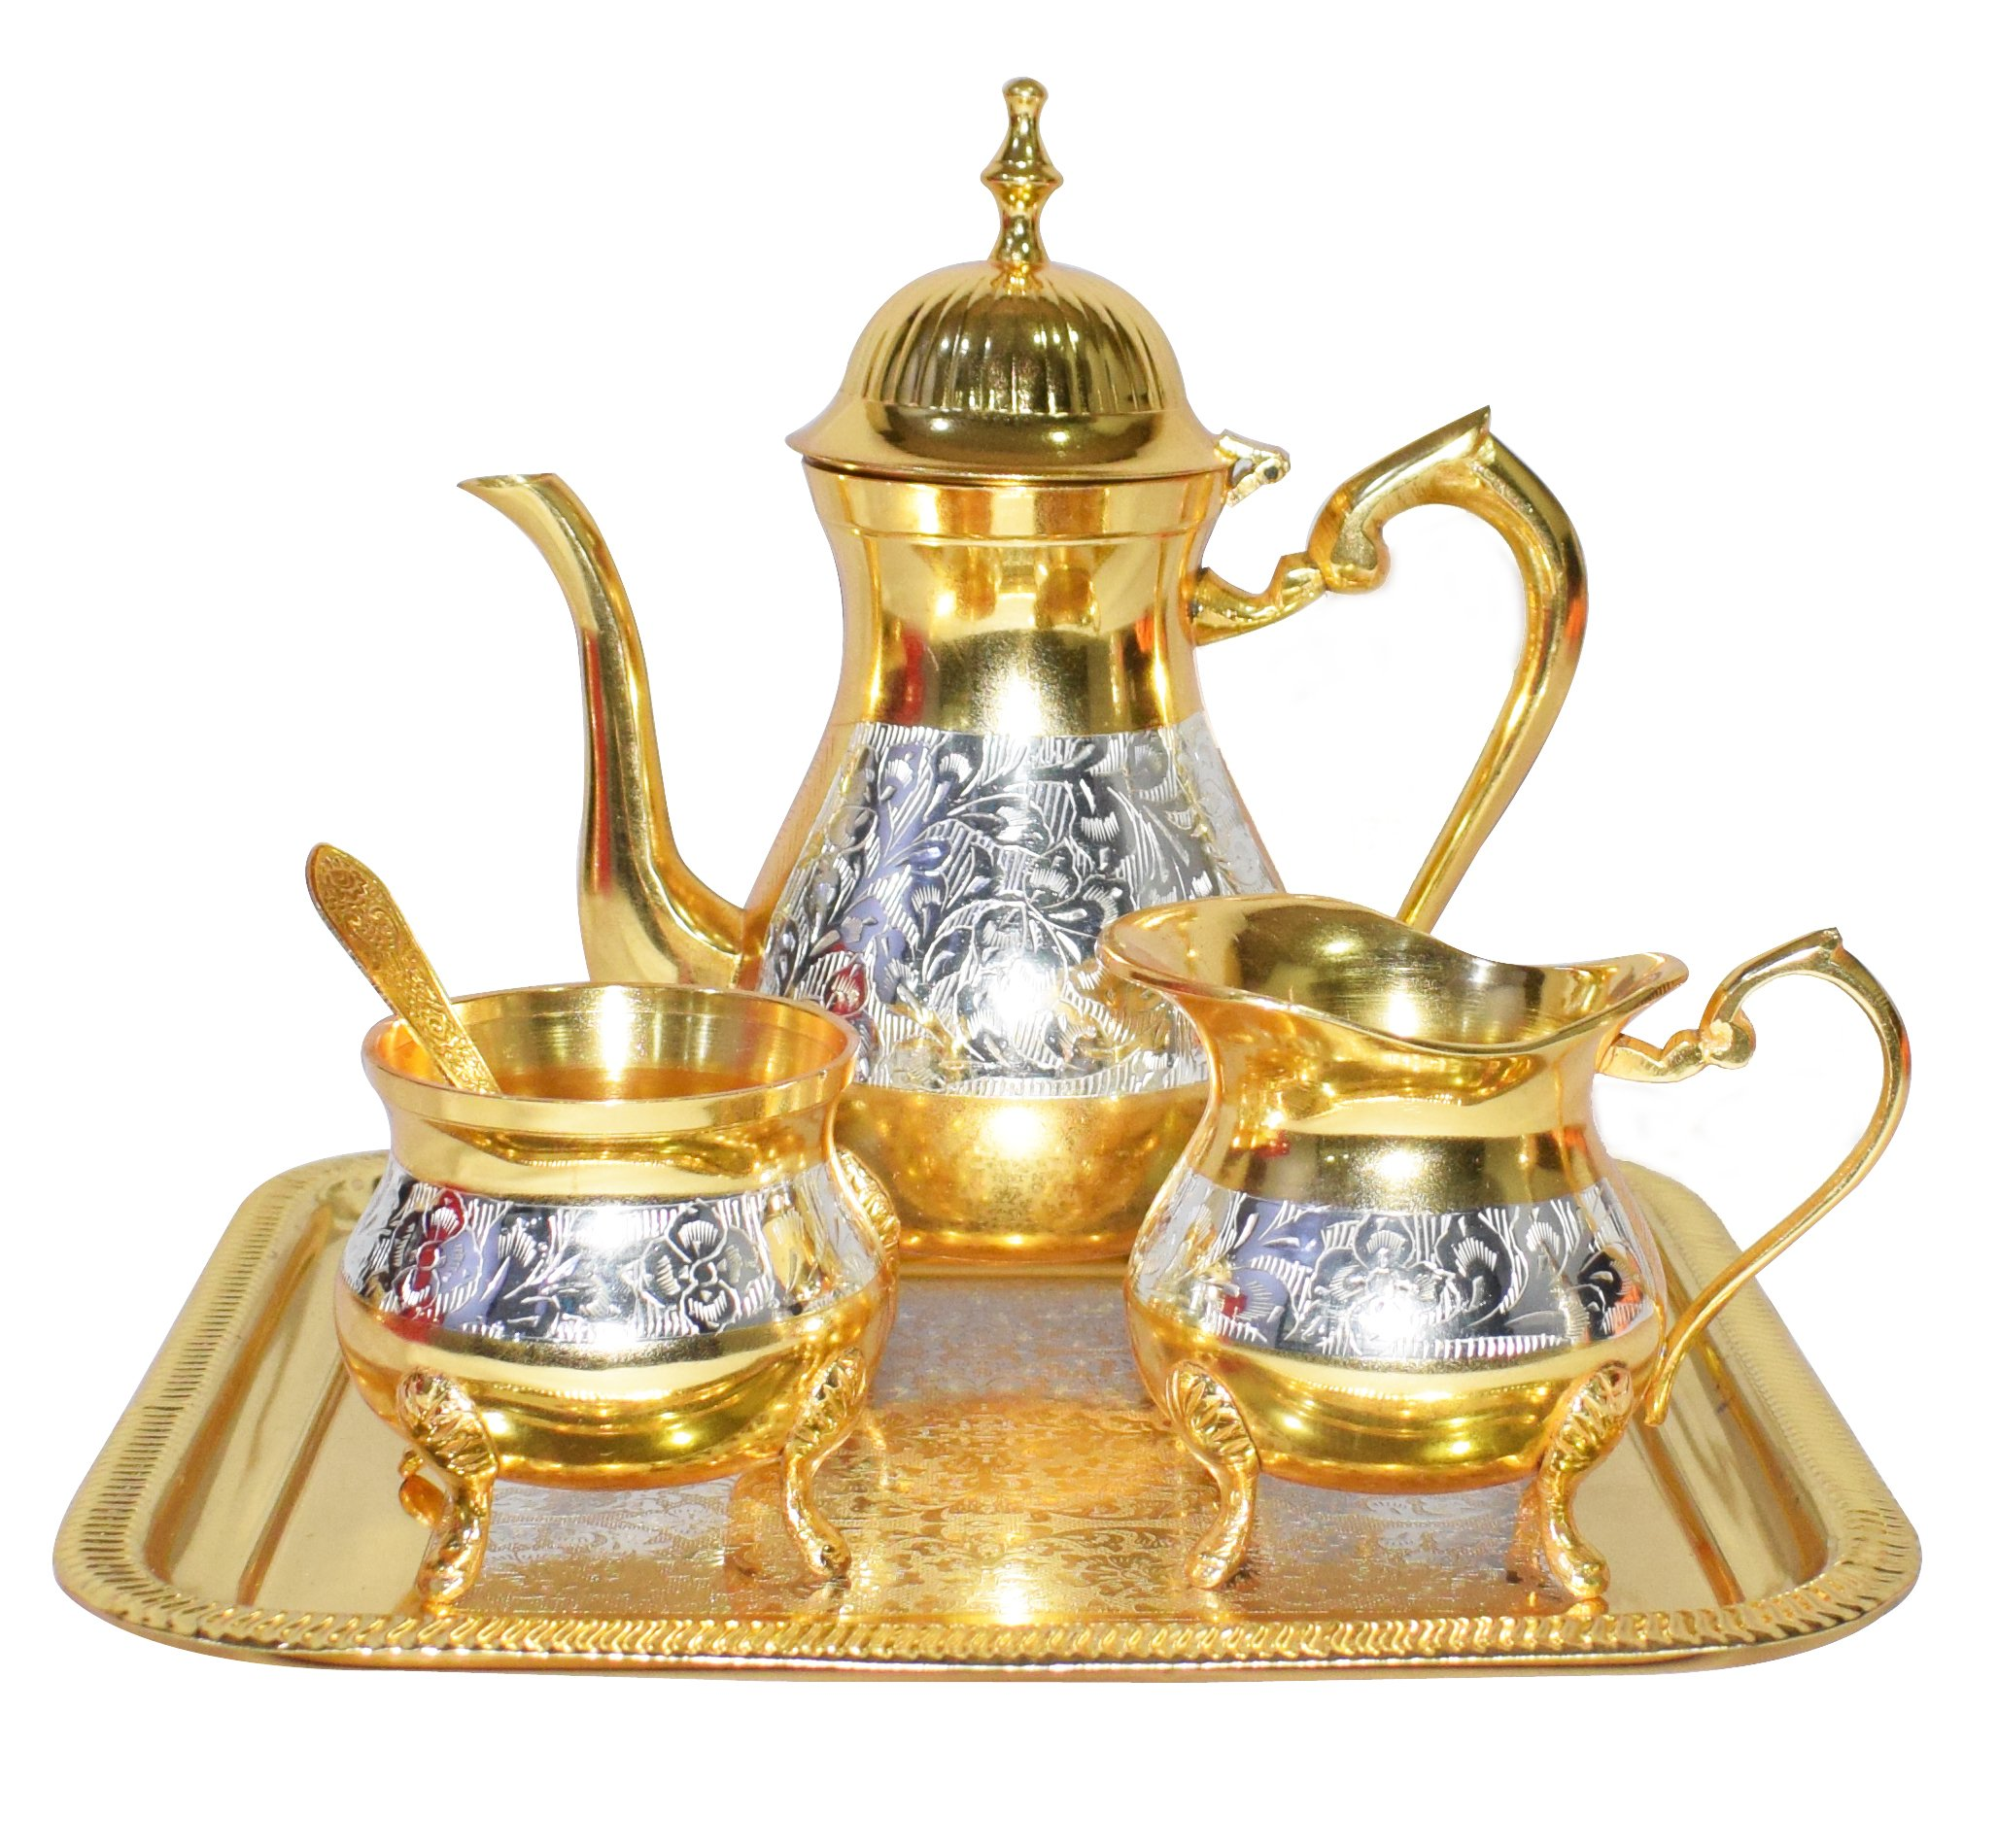 Chritmas Gift/Chritmas Sale Set Premium Antique Mughal Style Brass Gold and Silver Tea Coffee Set.Modern and Traditional Home Decor Themes 